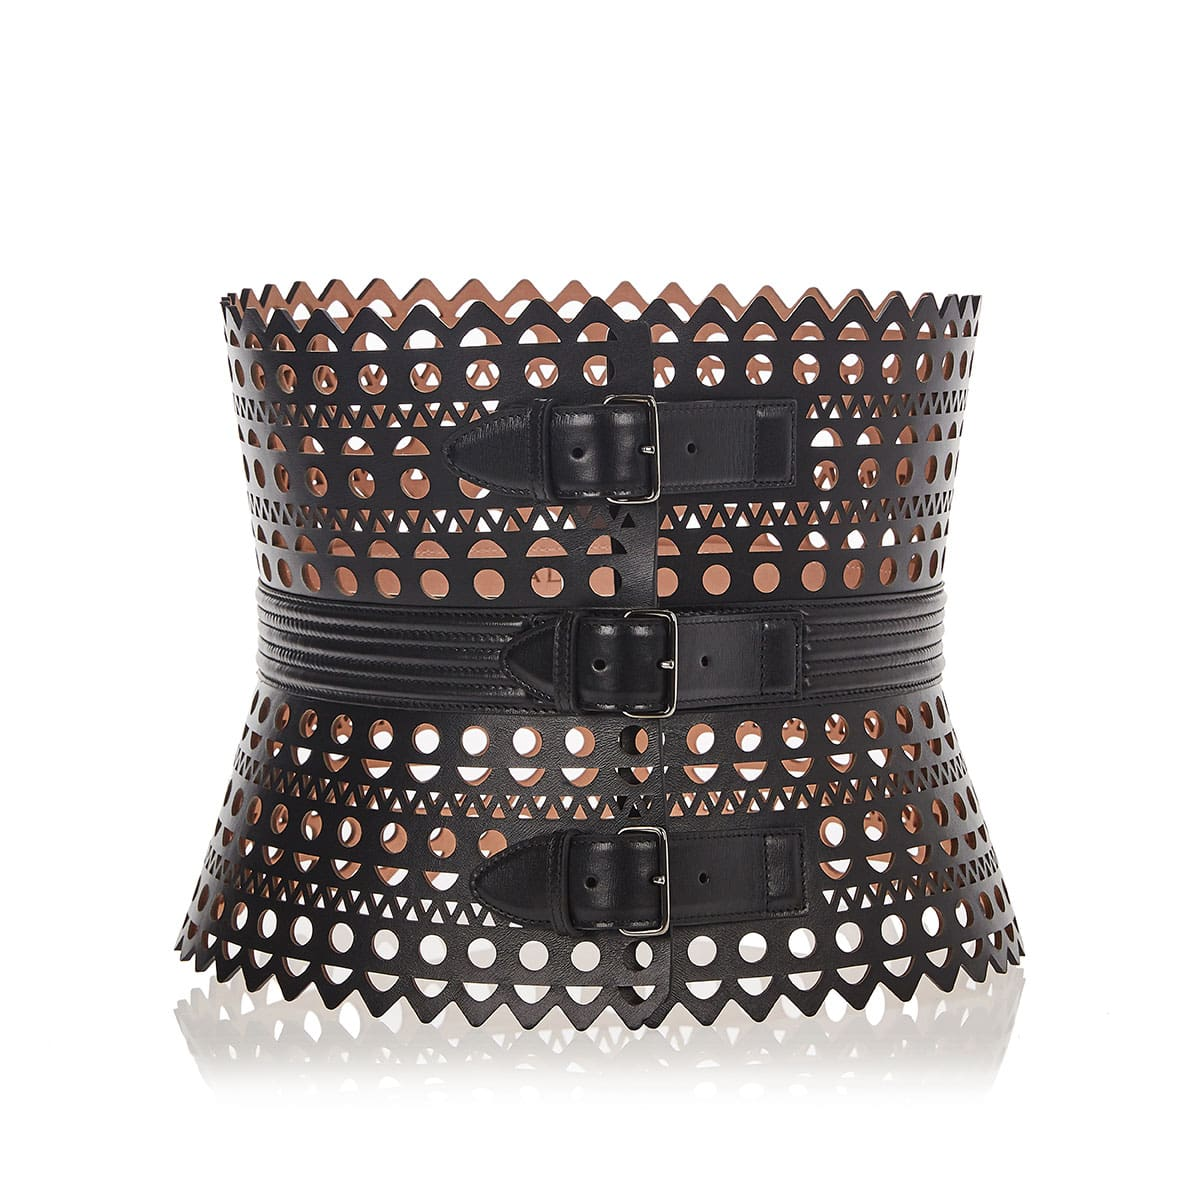 Laser-cut leather corset belt